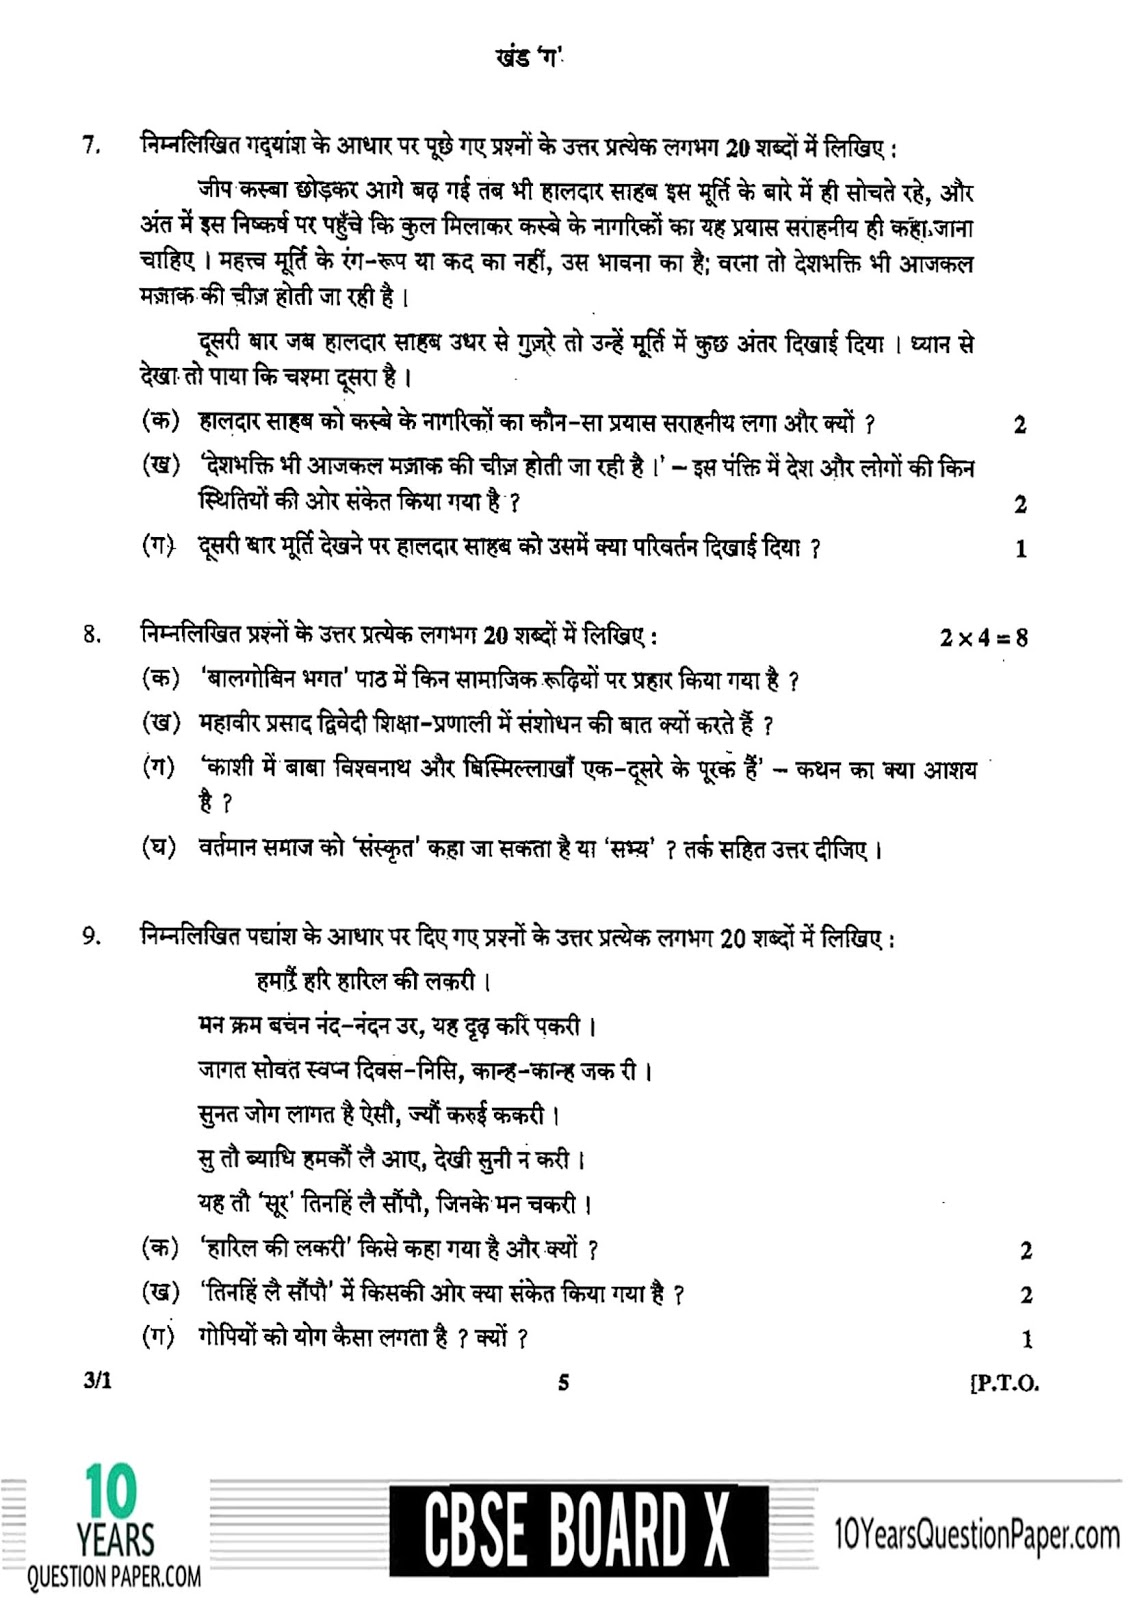 CBSE Board 2018 Hindi Course A Question paper Class 10 Page-05